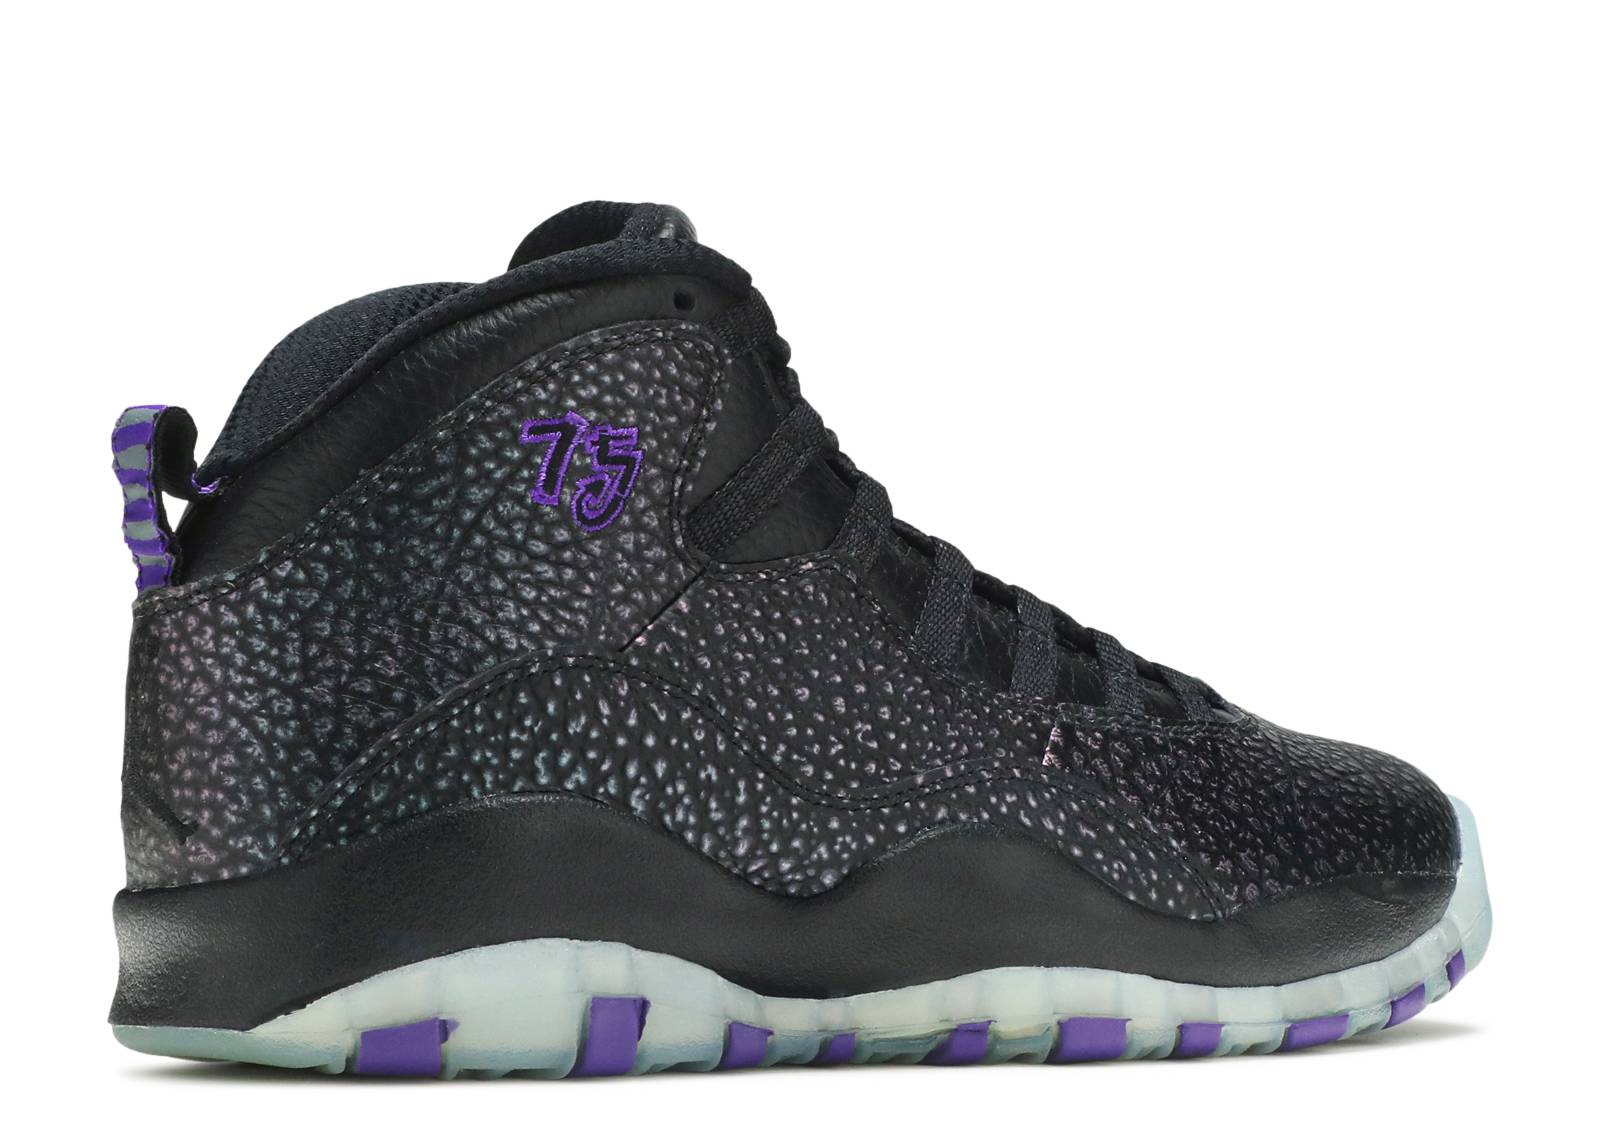 air jordan 10 black purple